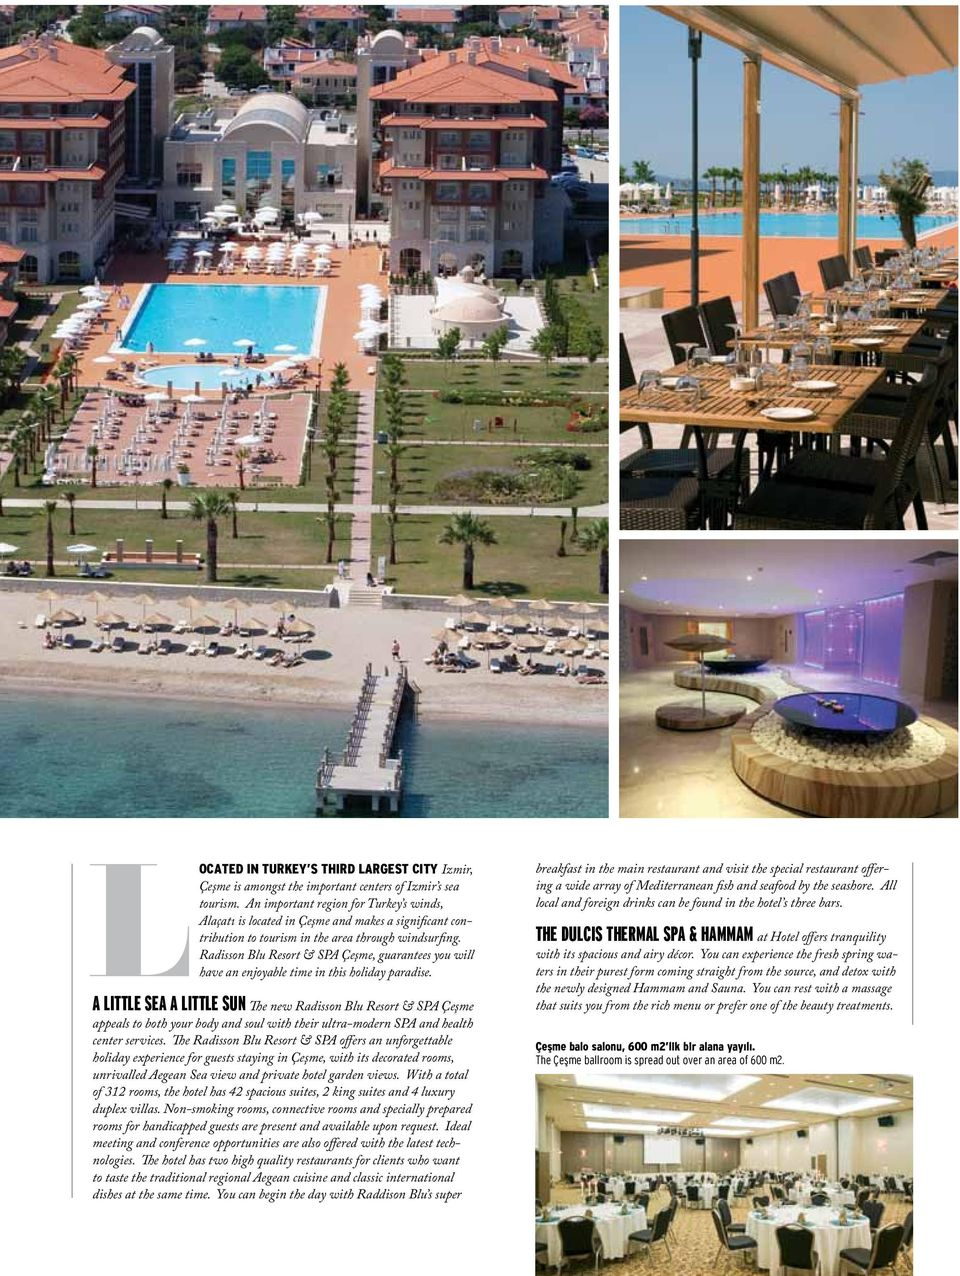 Radisson Blu Resort & SPA Çeşme, guarantees you will have an enjoyable time in this holiday paradise.